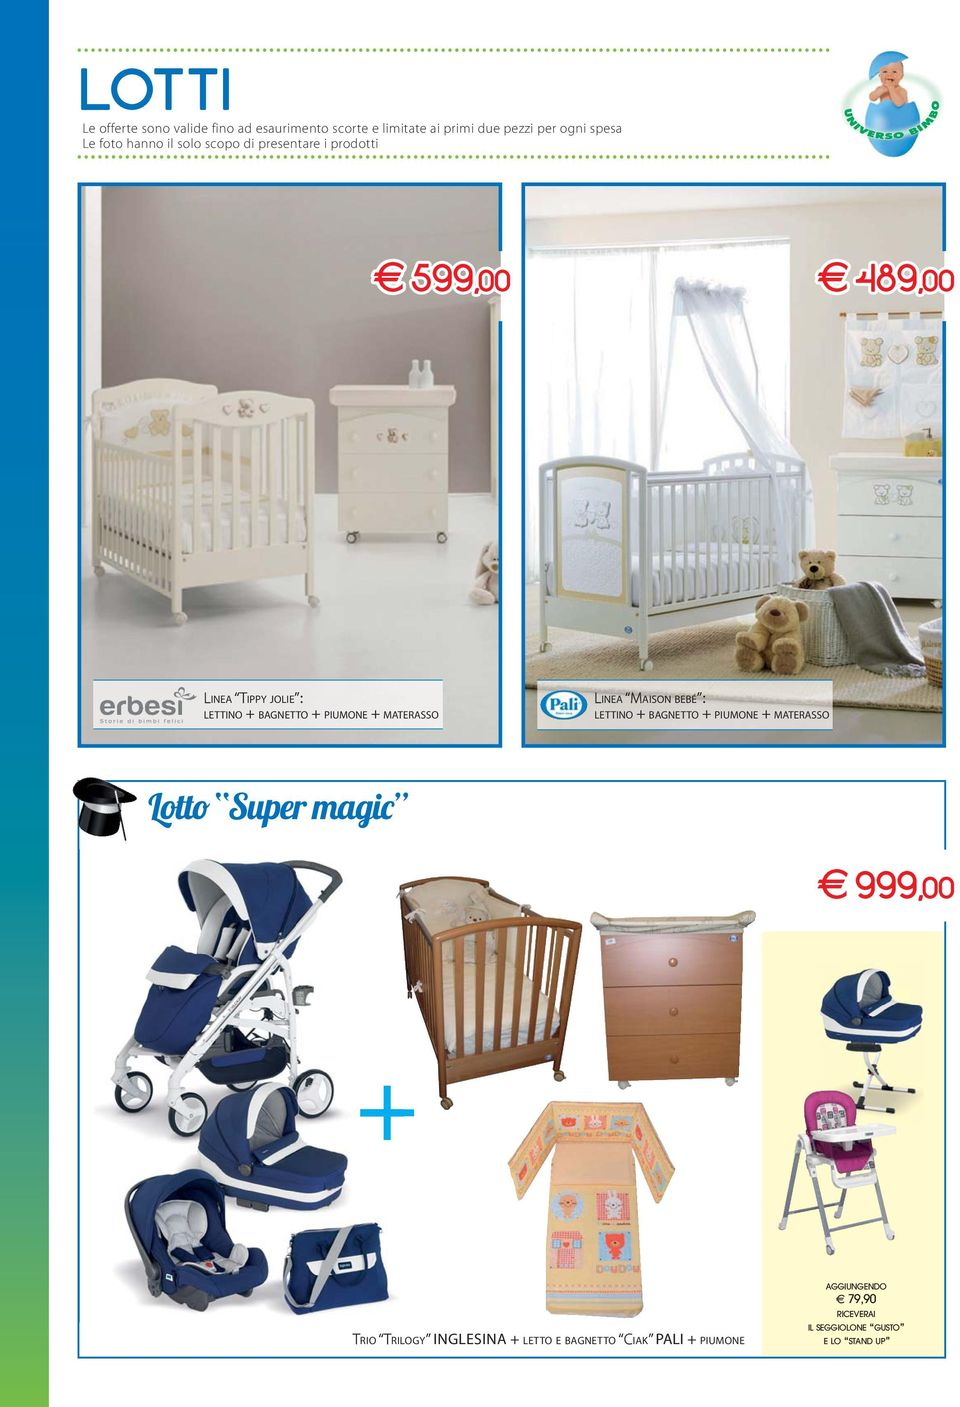 Lotto Super magic 999,00 489,00 TRIO TRILOGY INGLESINA + LETTO E BAGNETTO